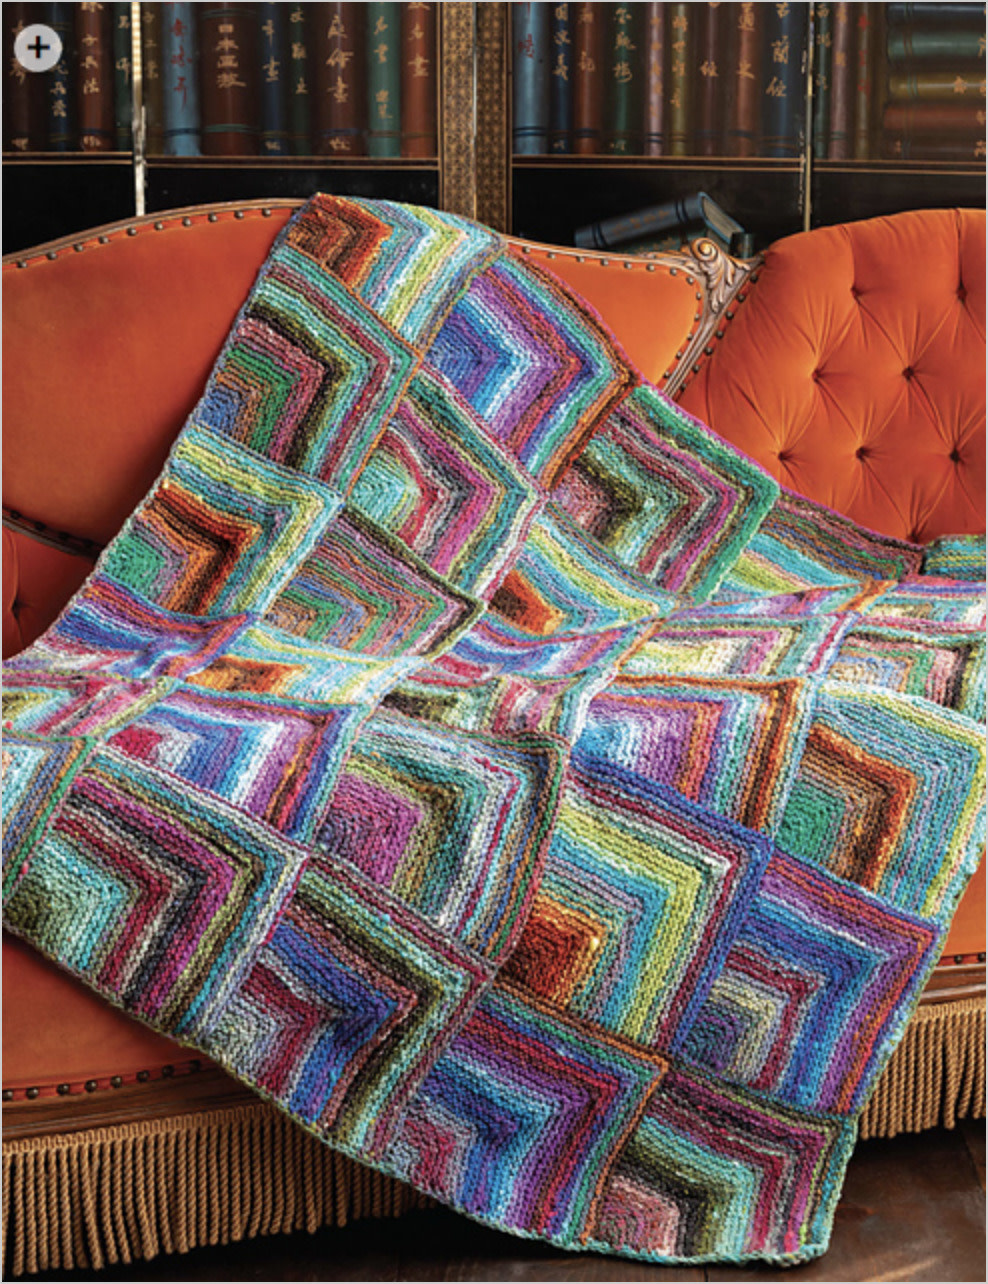 Noro Timeless Noro: Knit Blankets